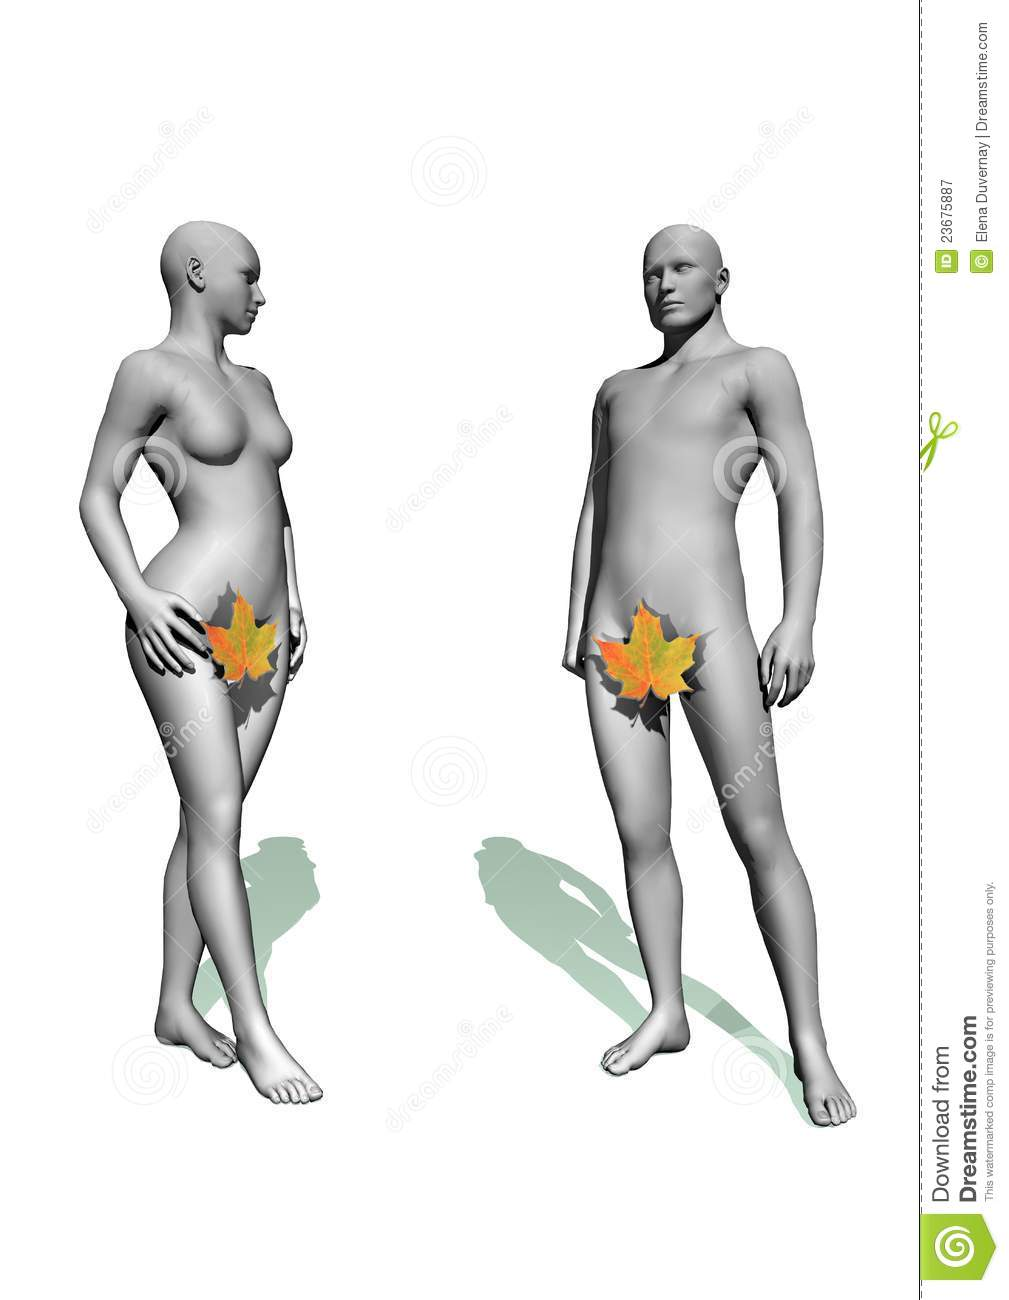 adam and eve royalty free stock photography image 23675887